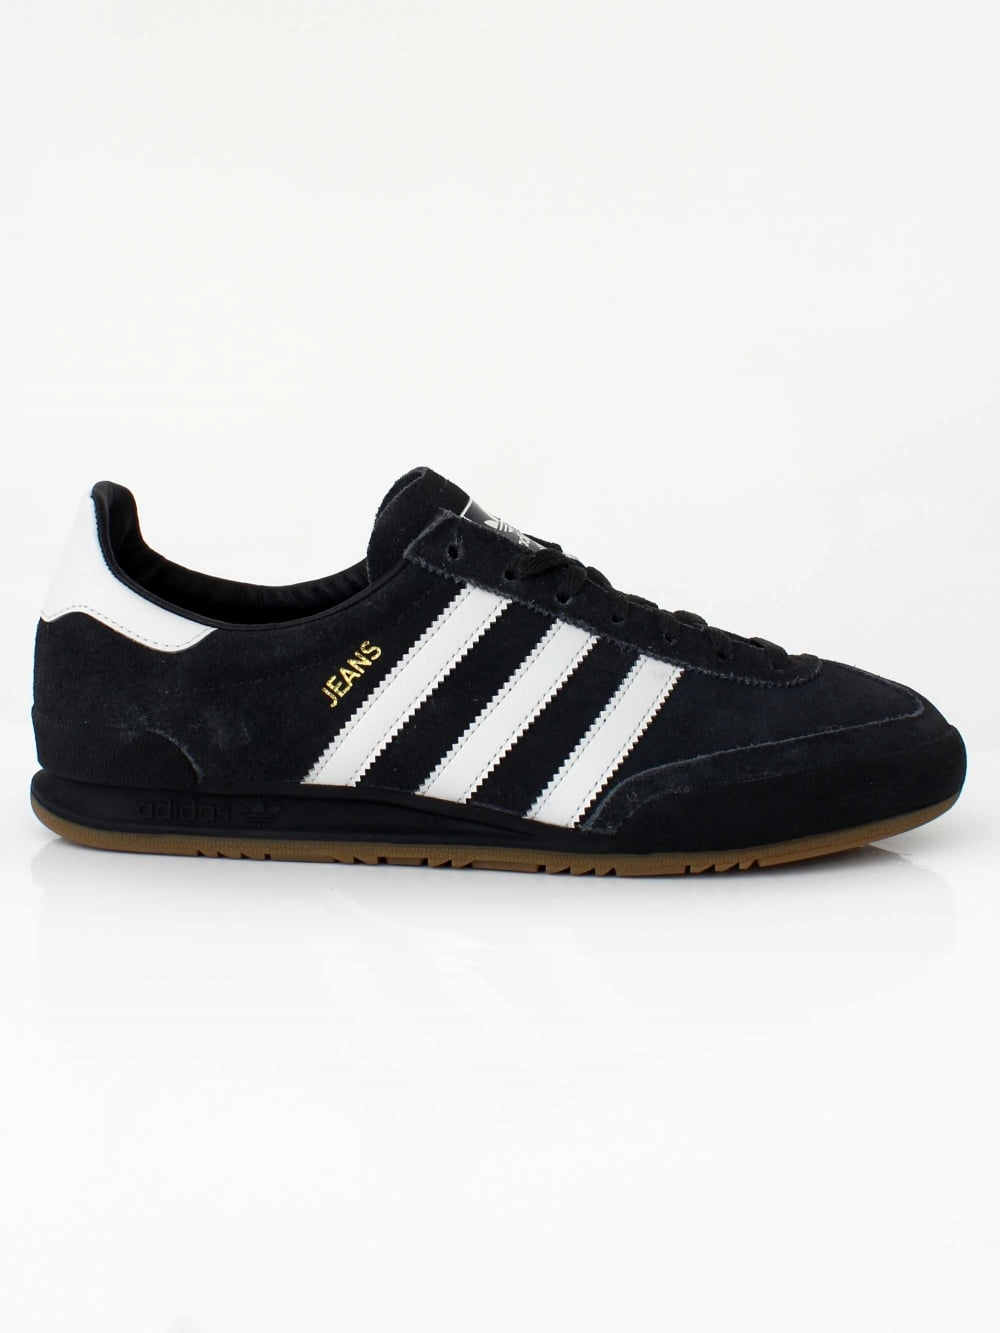 Adidas Jeans in Carbon  6be321096729